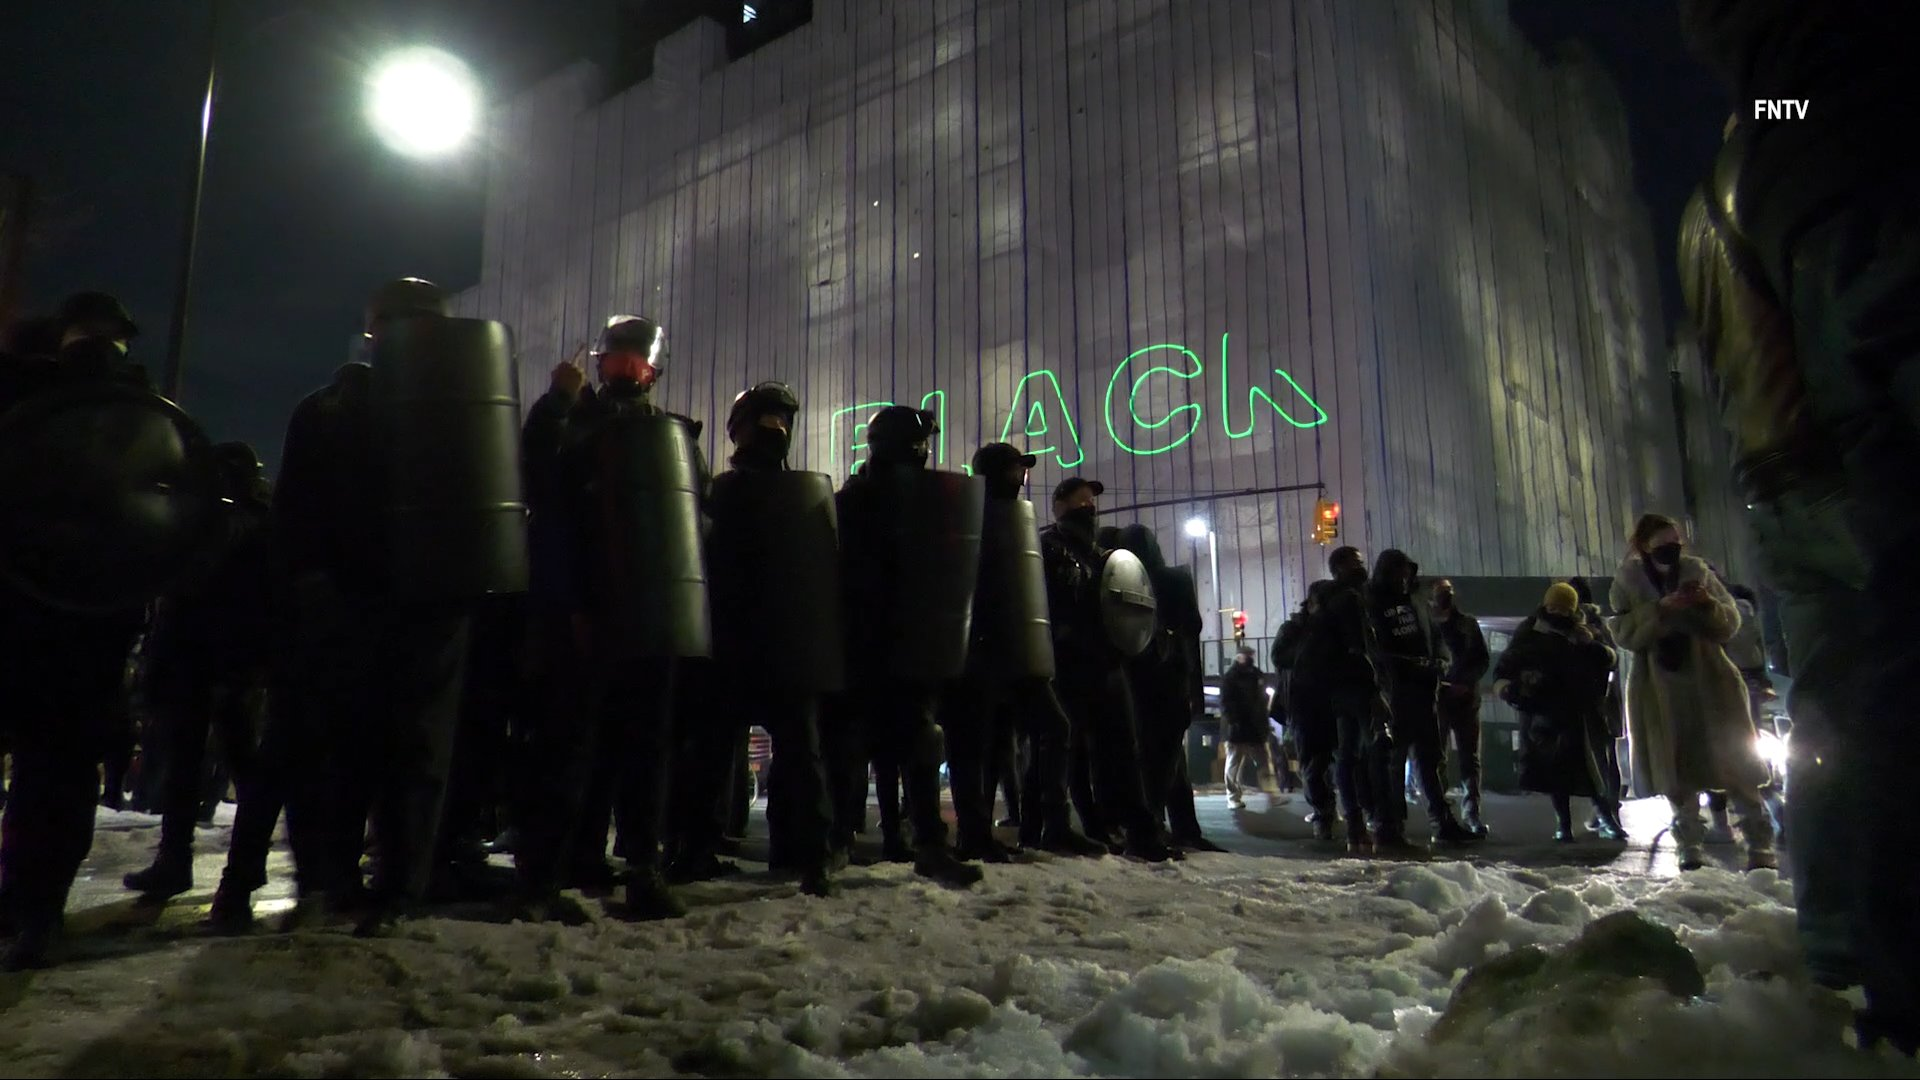 Anarchists in New York March on 84th Precinct After Maskless Police Officer Assaults Protester